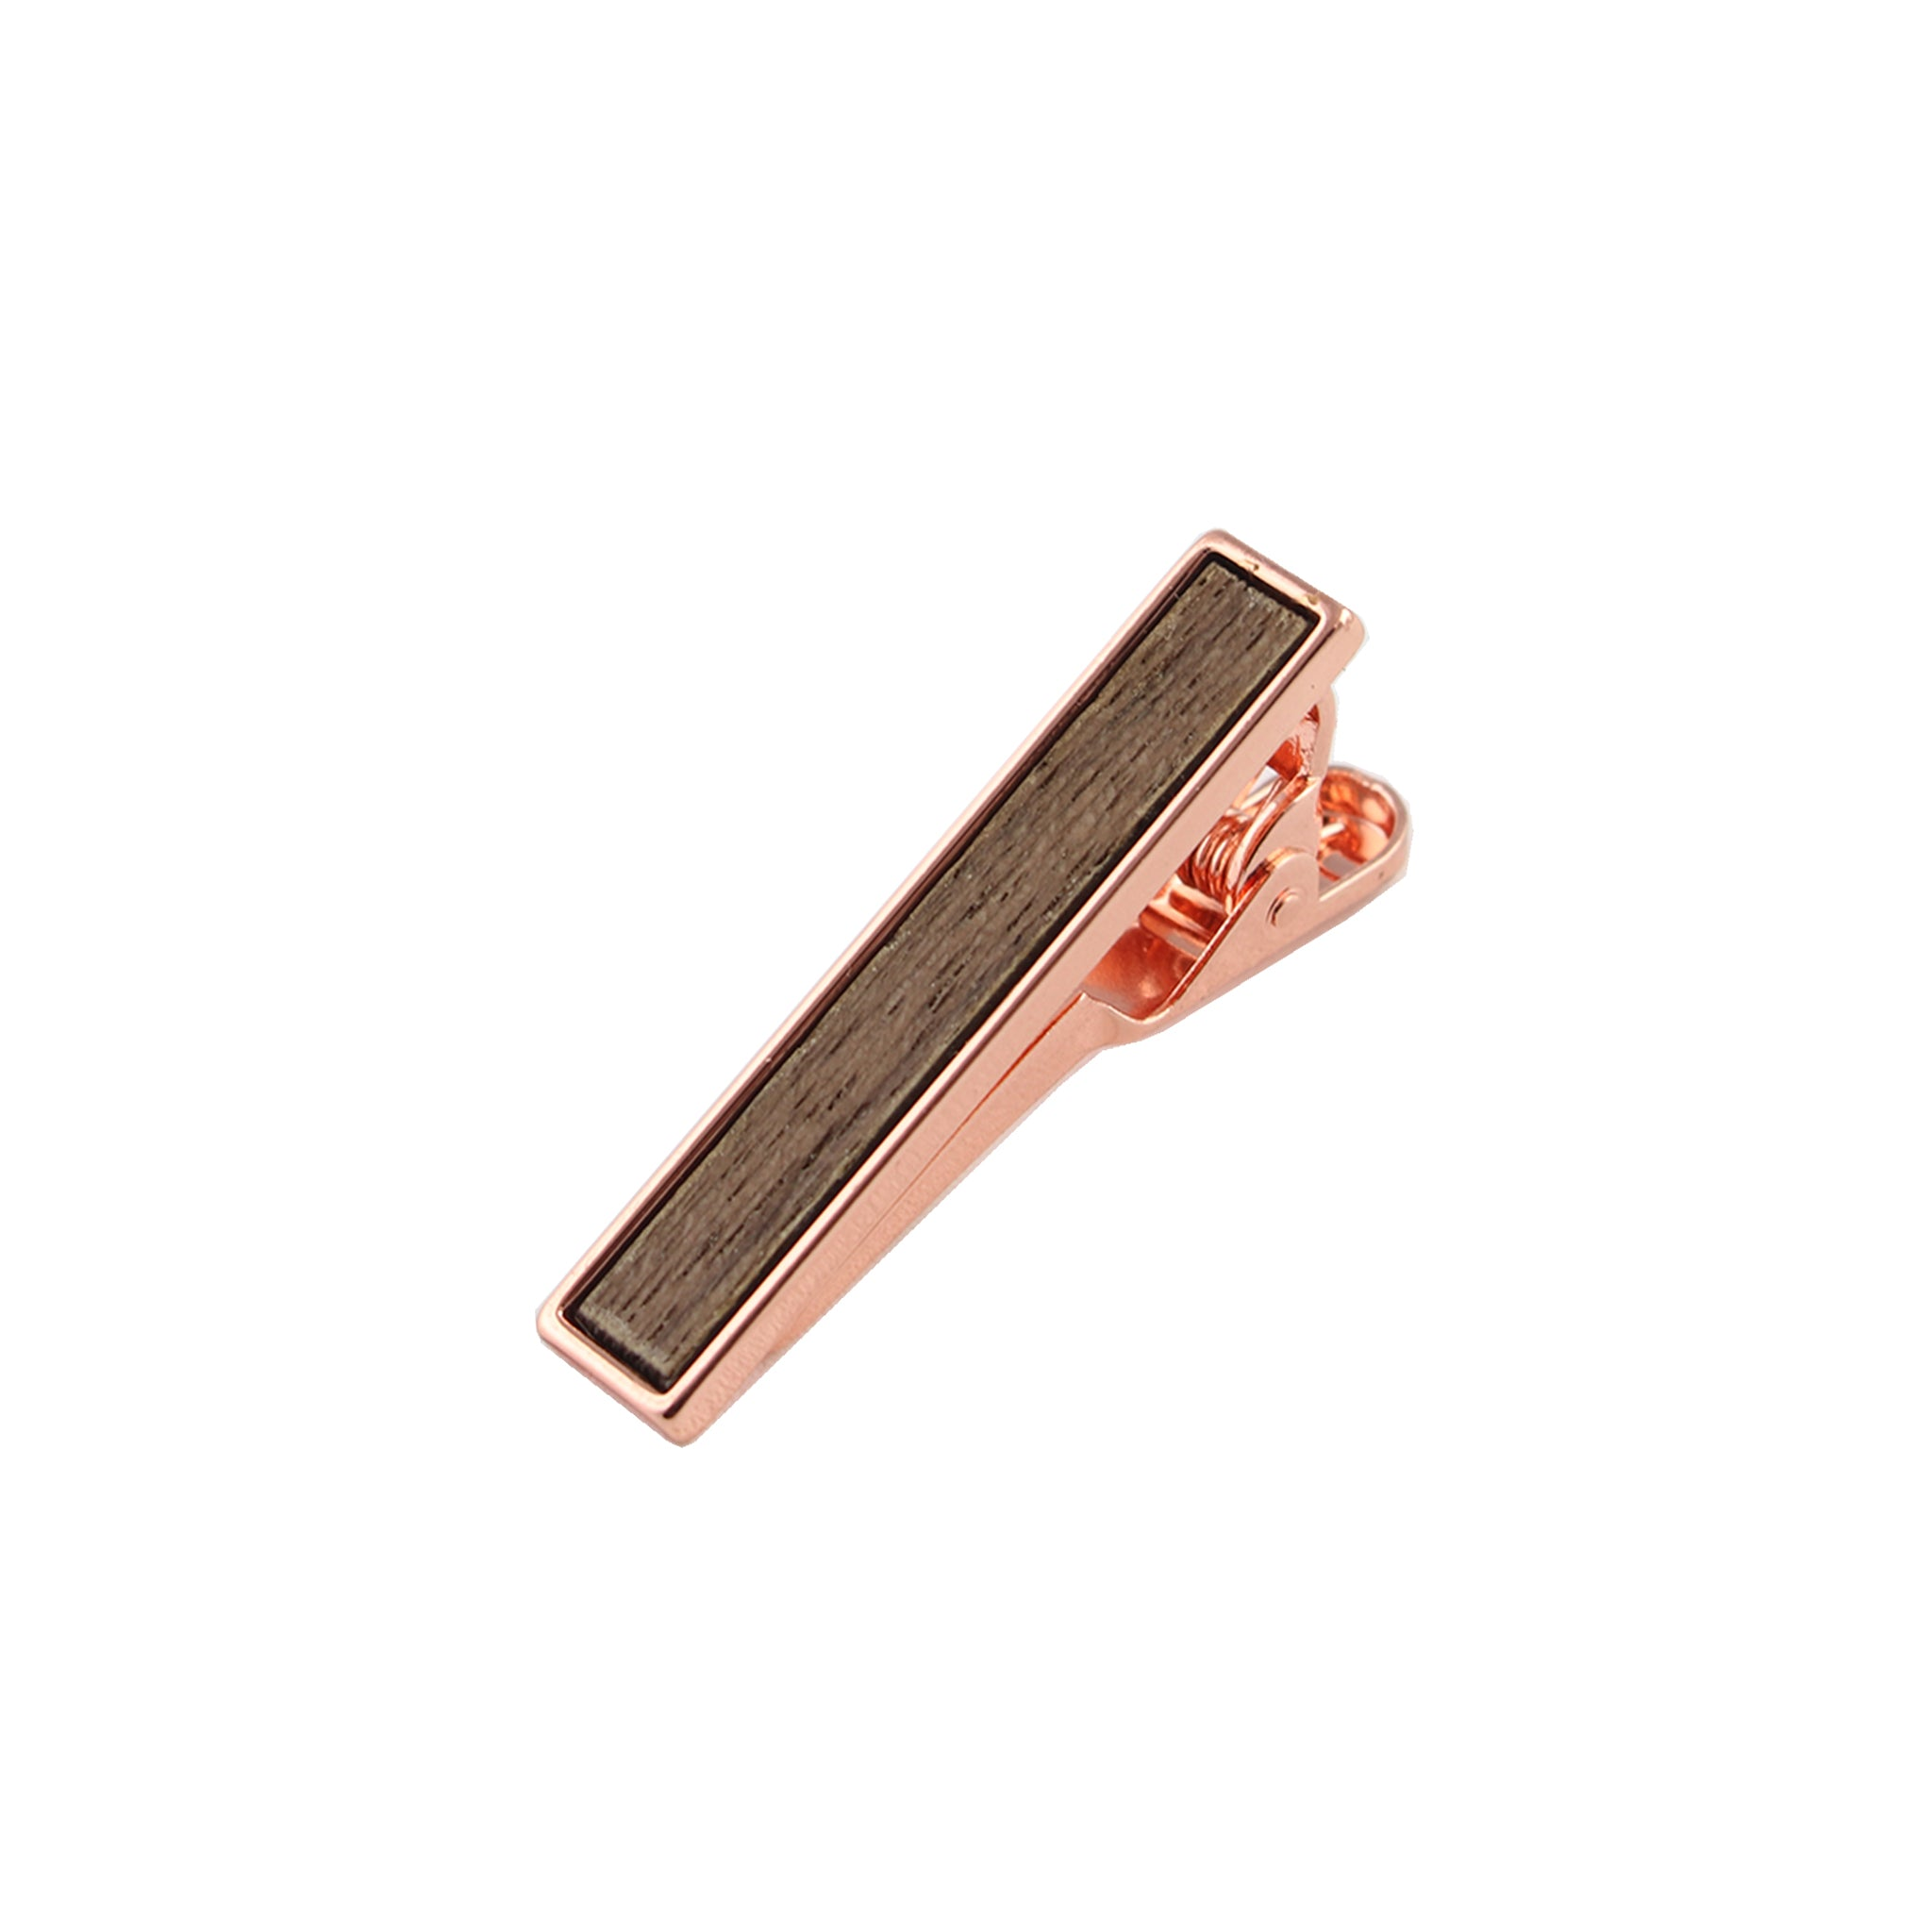 Walnut Wooden Inlay-Rose Gold Tie Bar from DIBI